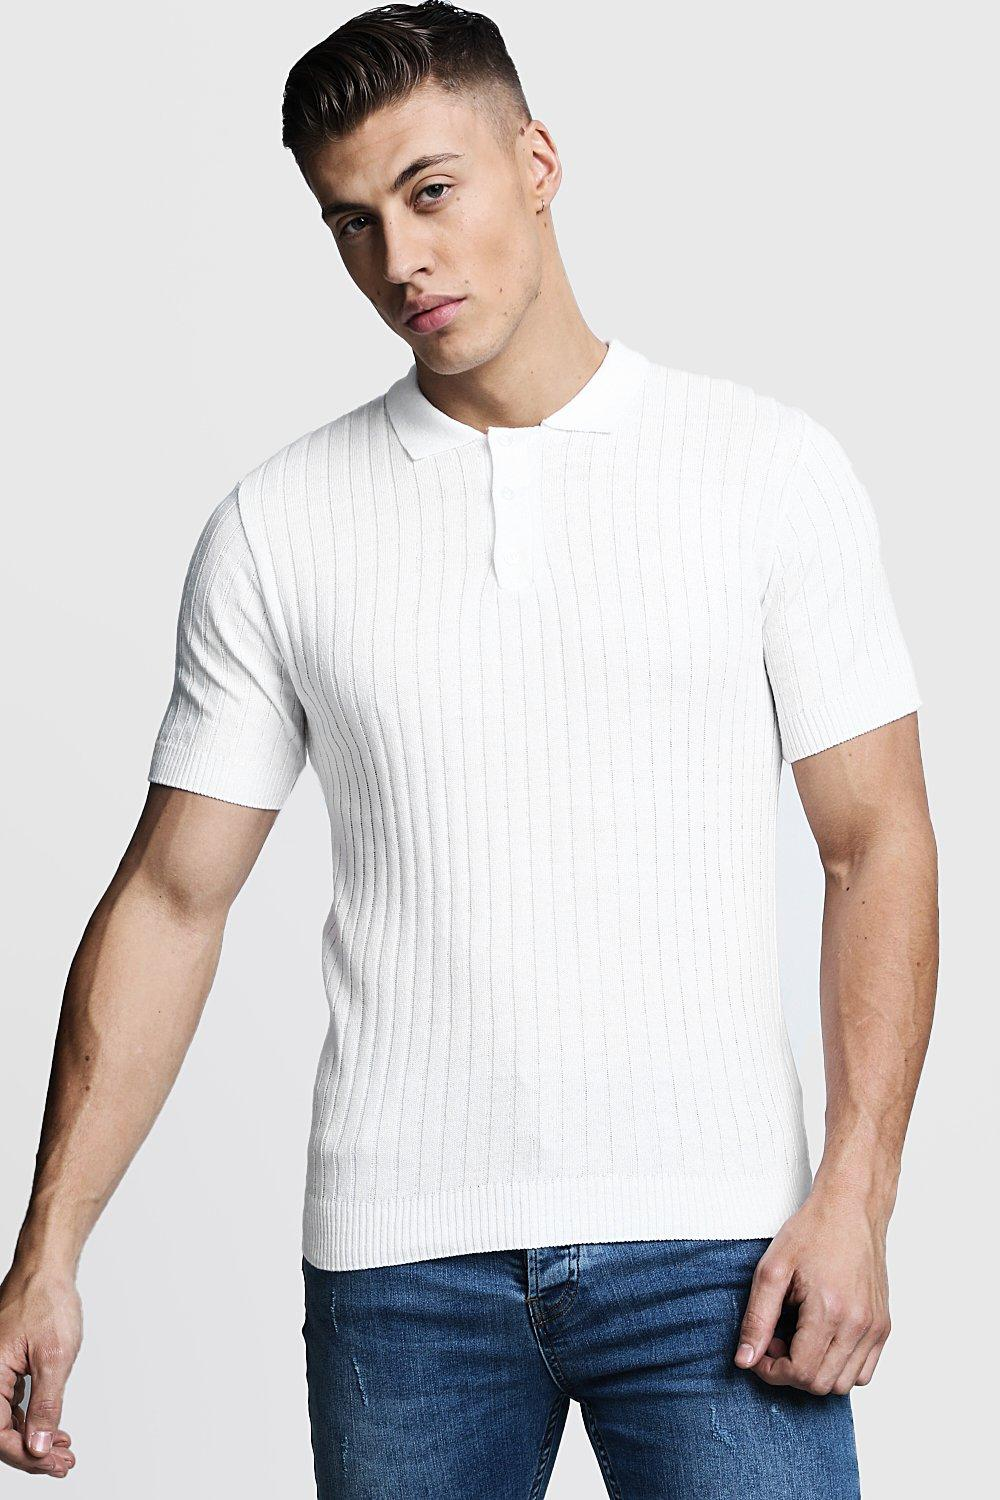 1940s UK and Europe Men's Clothing – WW2, Swing Dance, Goodwin Mens Muscle Fit Ribbed Knitted Polo - White $13.00 AT vintagedancer.com